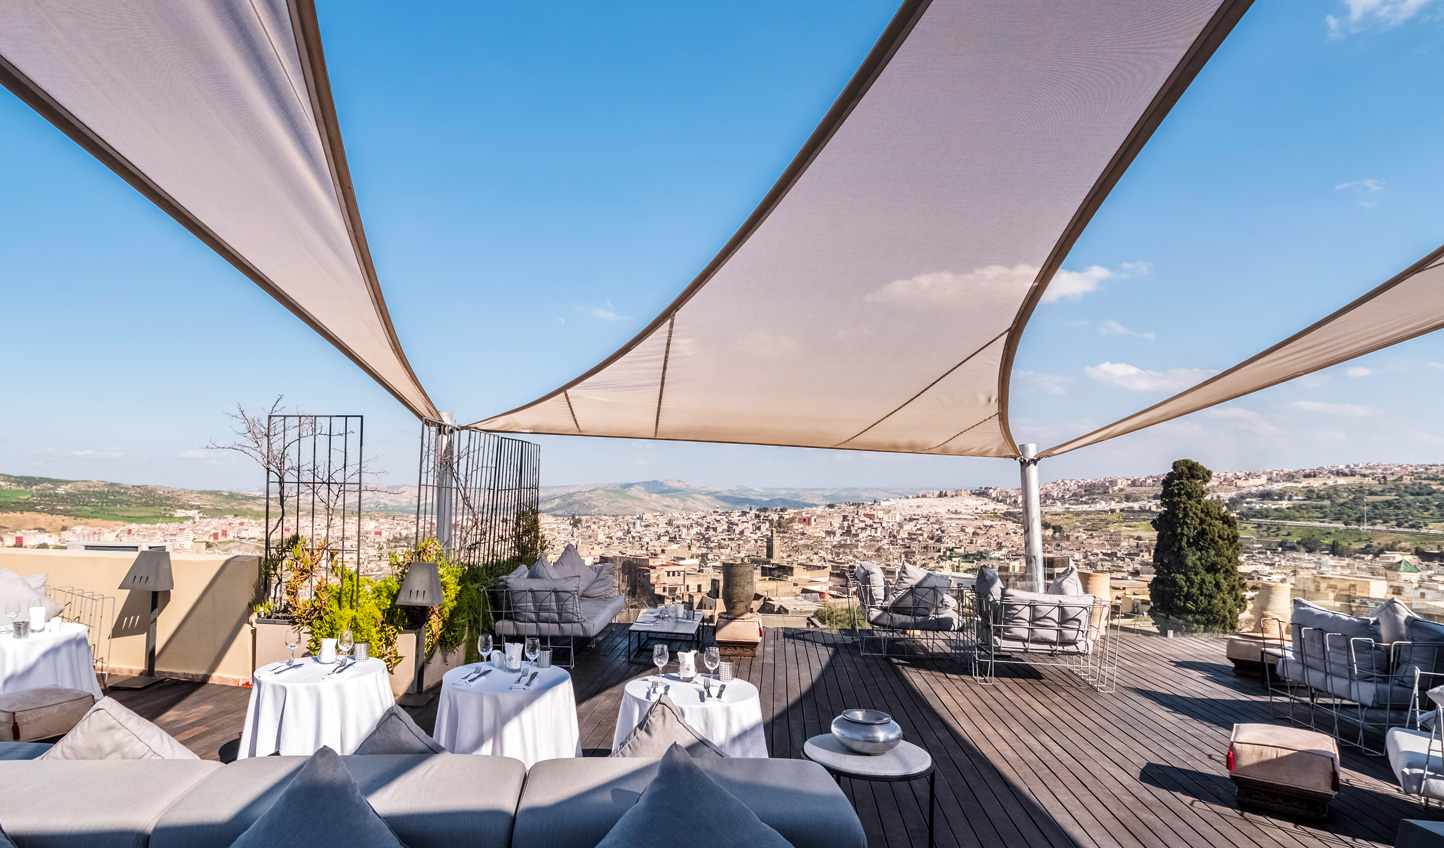 Enjoy endless views over the city from Riad Fes